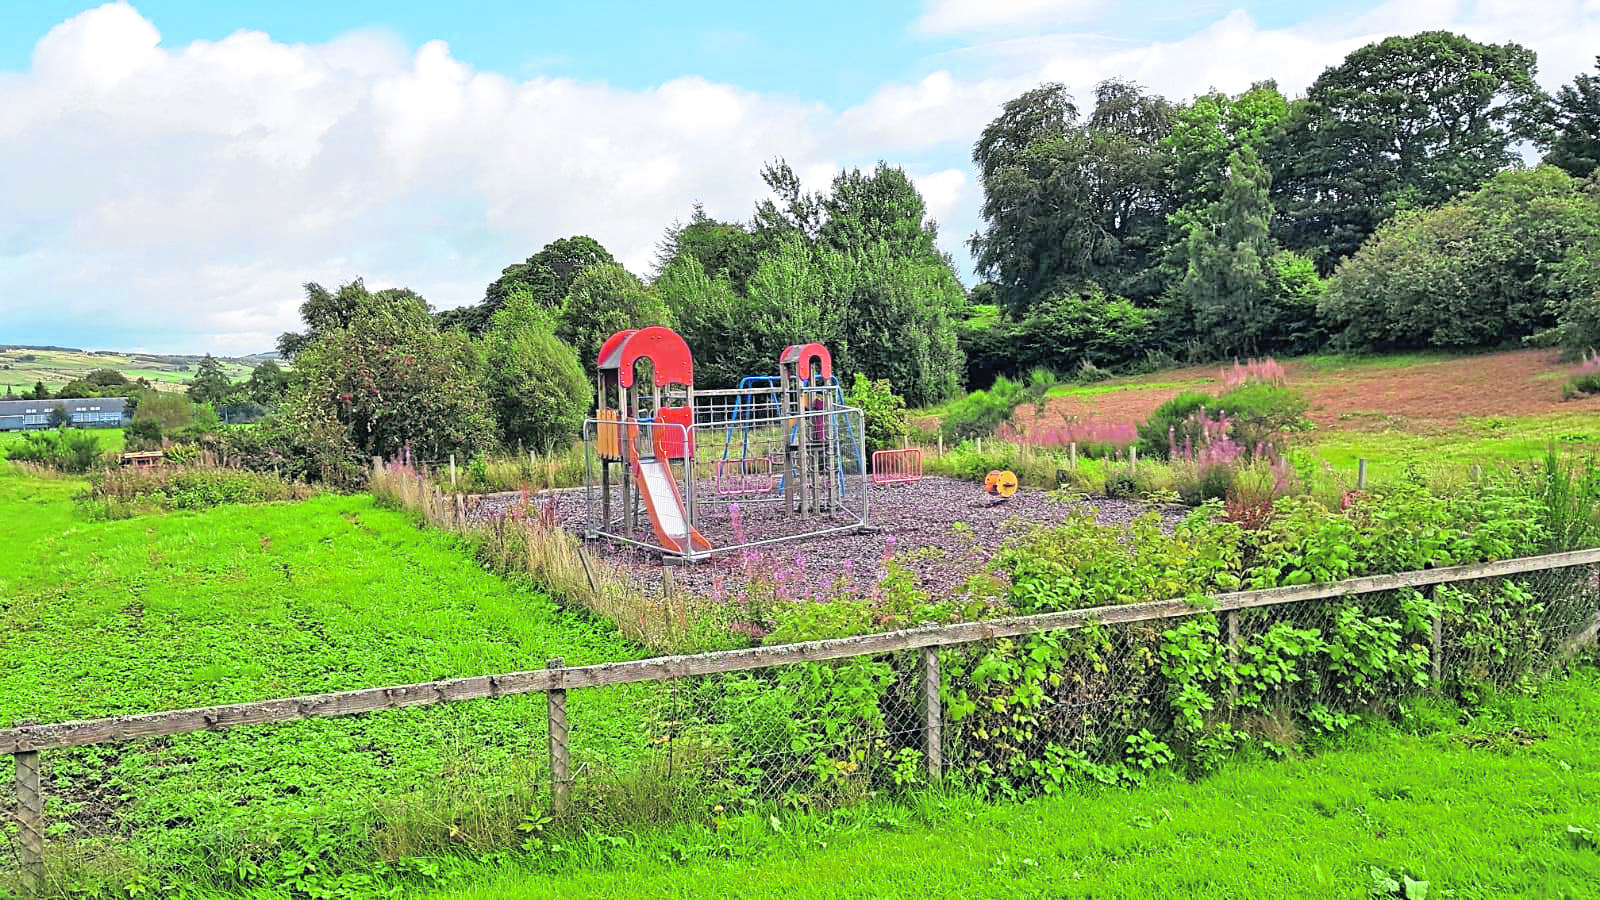 Plans for a children's play park in Strathpeffer.